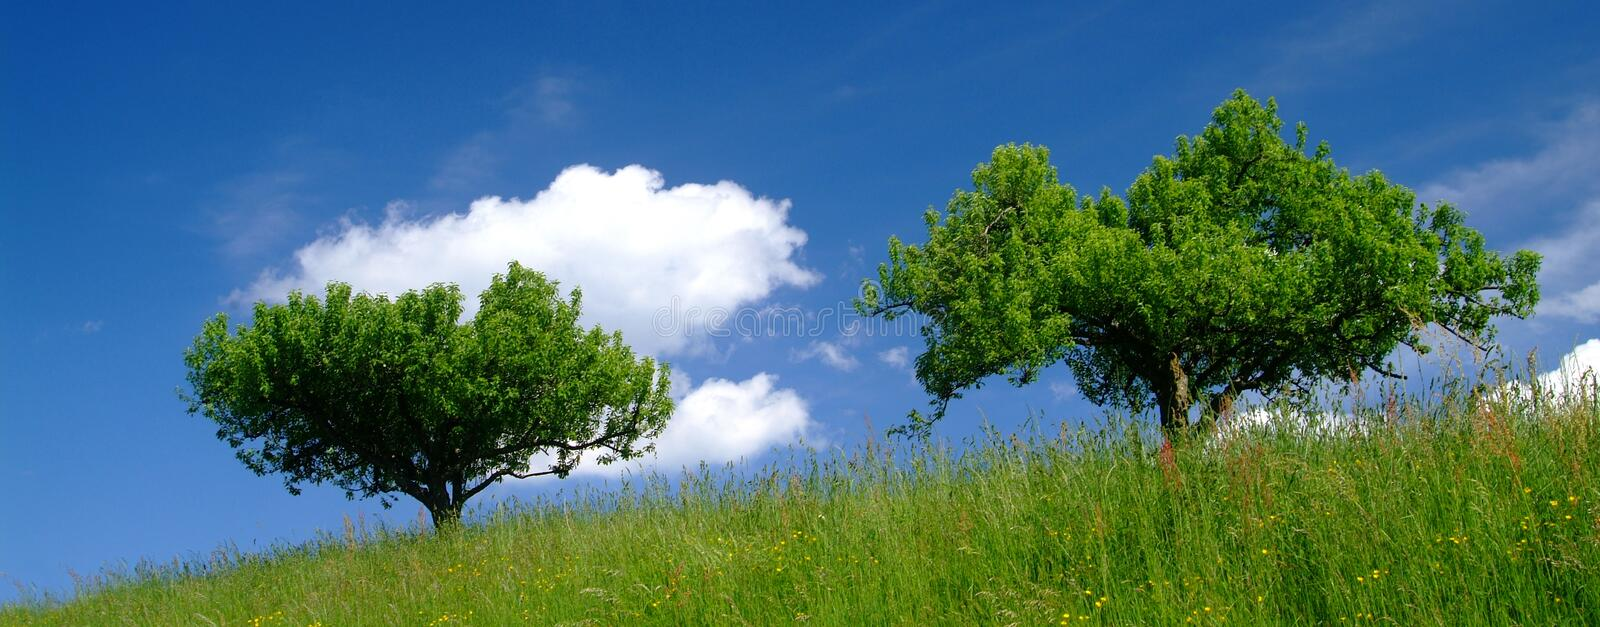 Trees in countryside. Trees on grassy hillside in countryside with blue sky and cloudscape background royalty free stock images